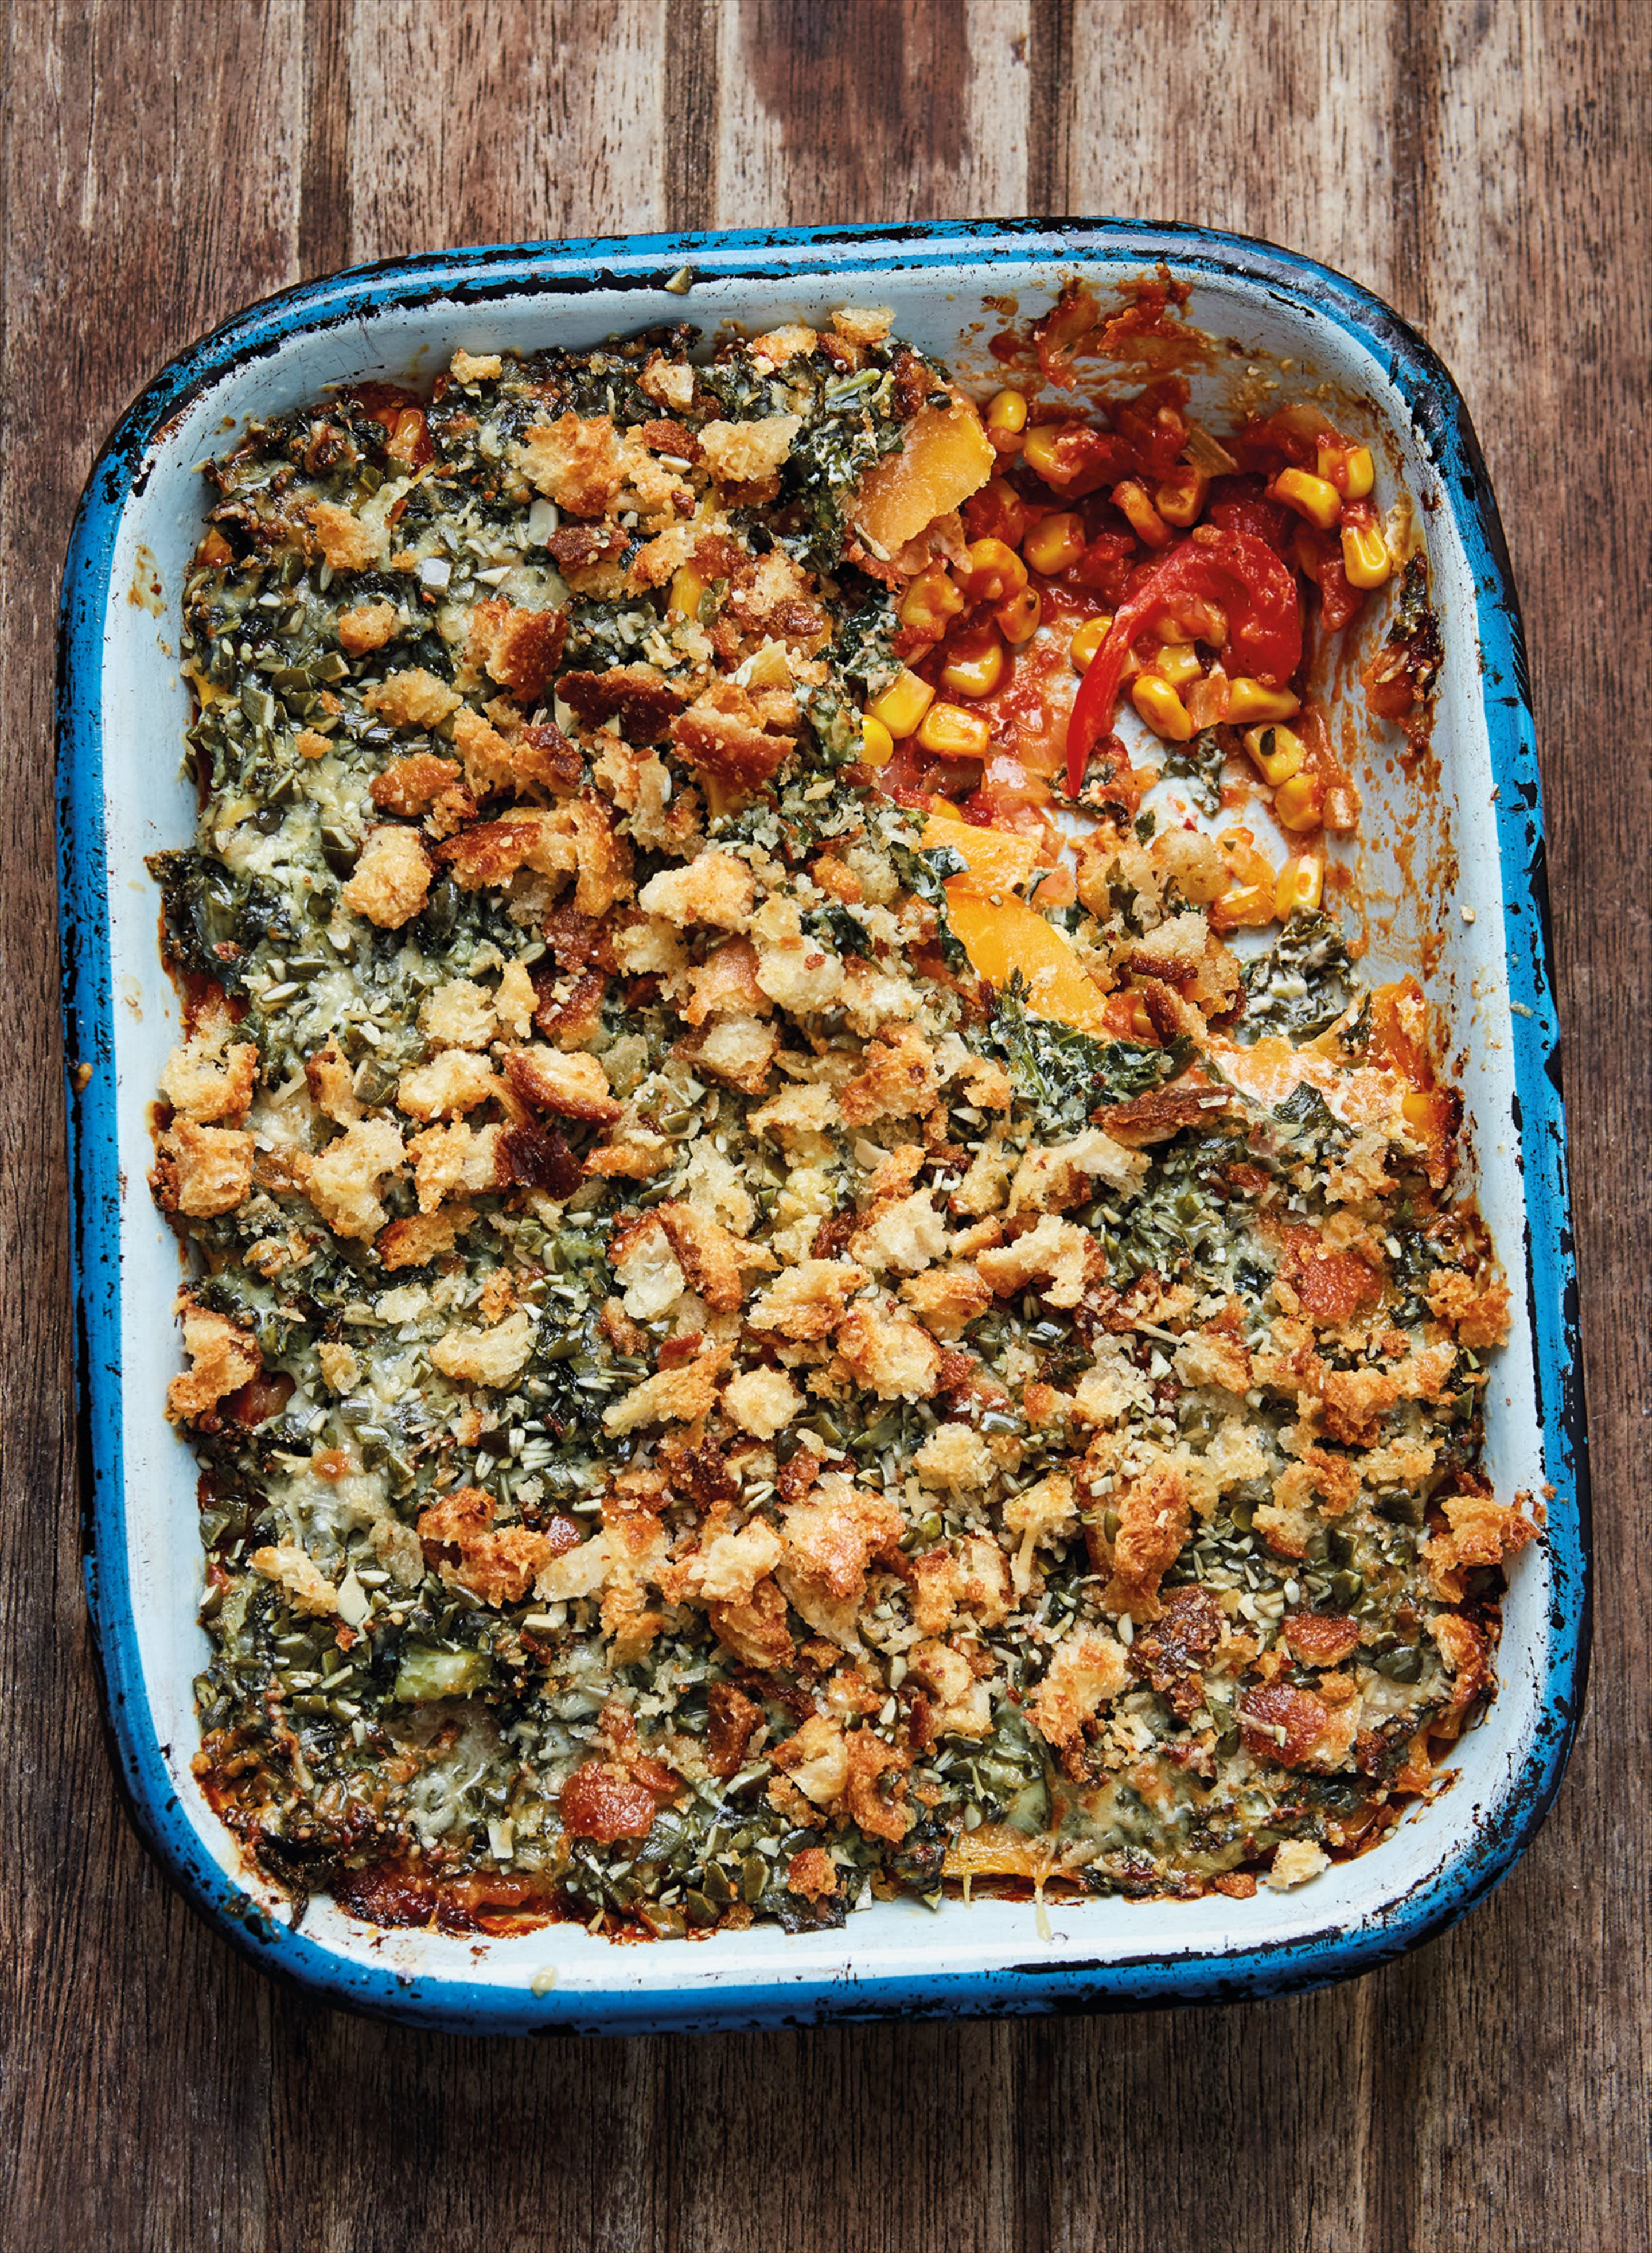 Tomato, squash and creamed kale gratin